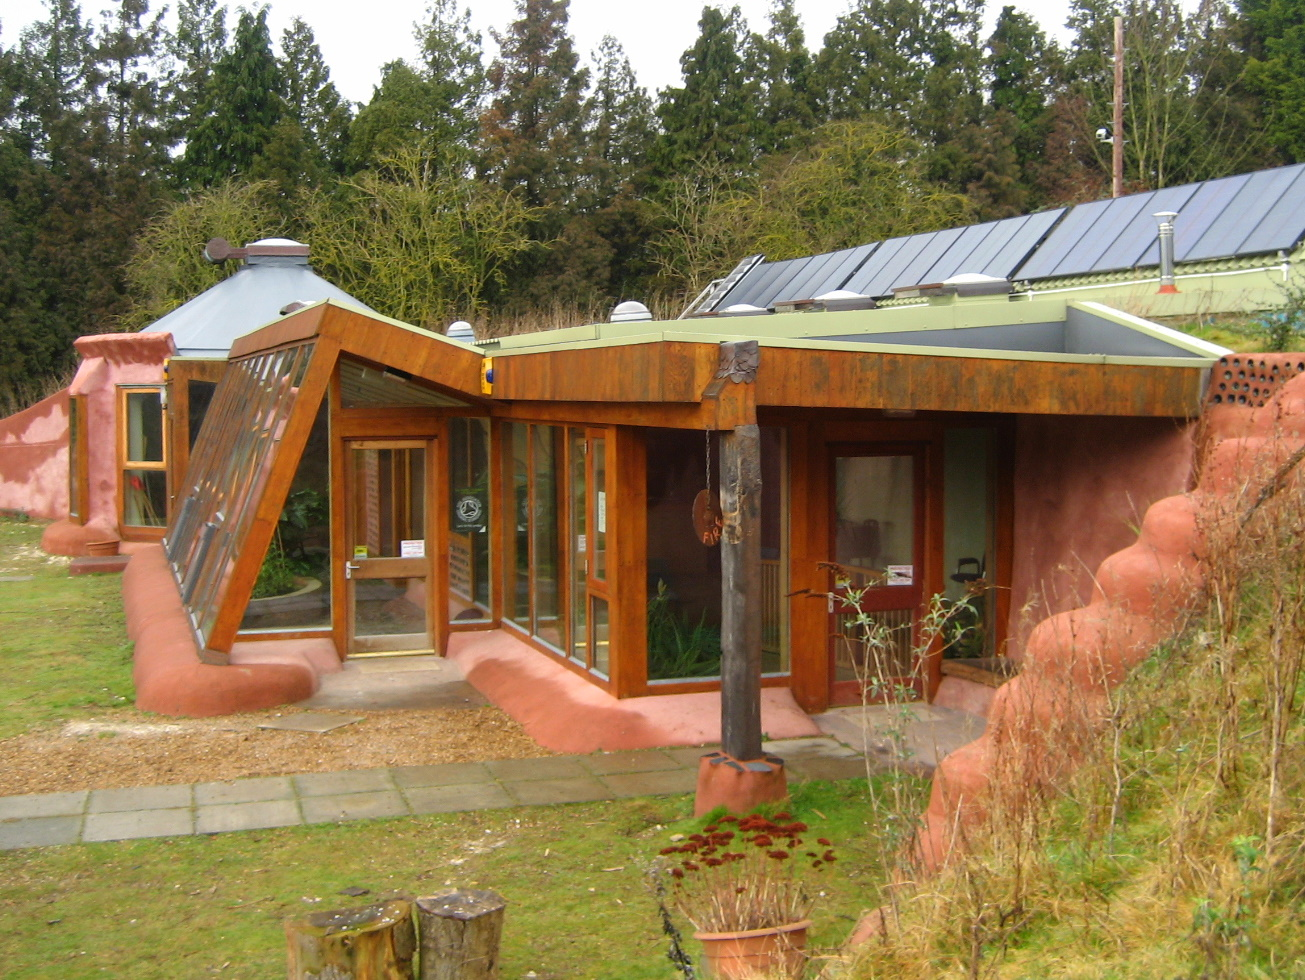 Invasion der Earthships